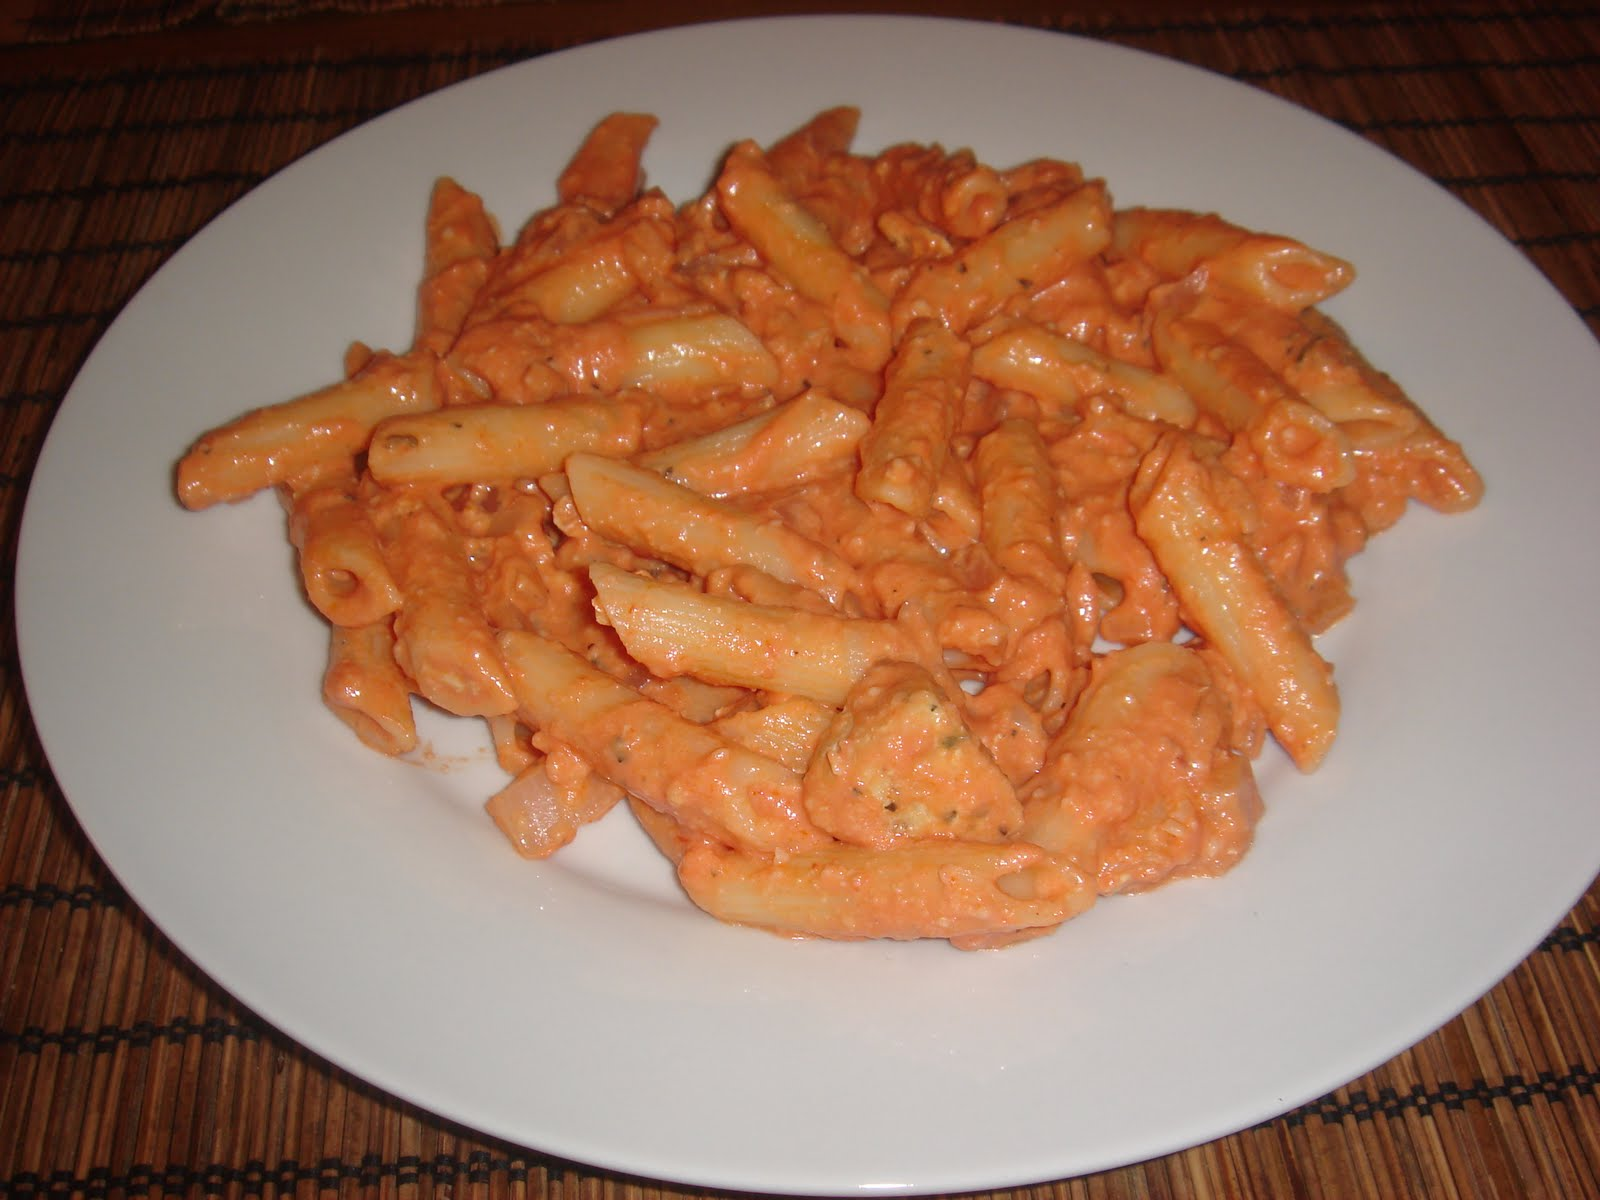 The New Chef's Journal: Penne alla vodka